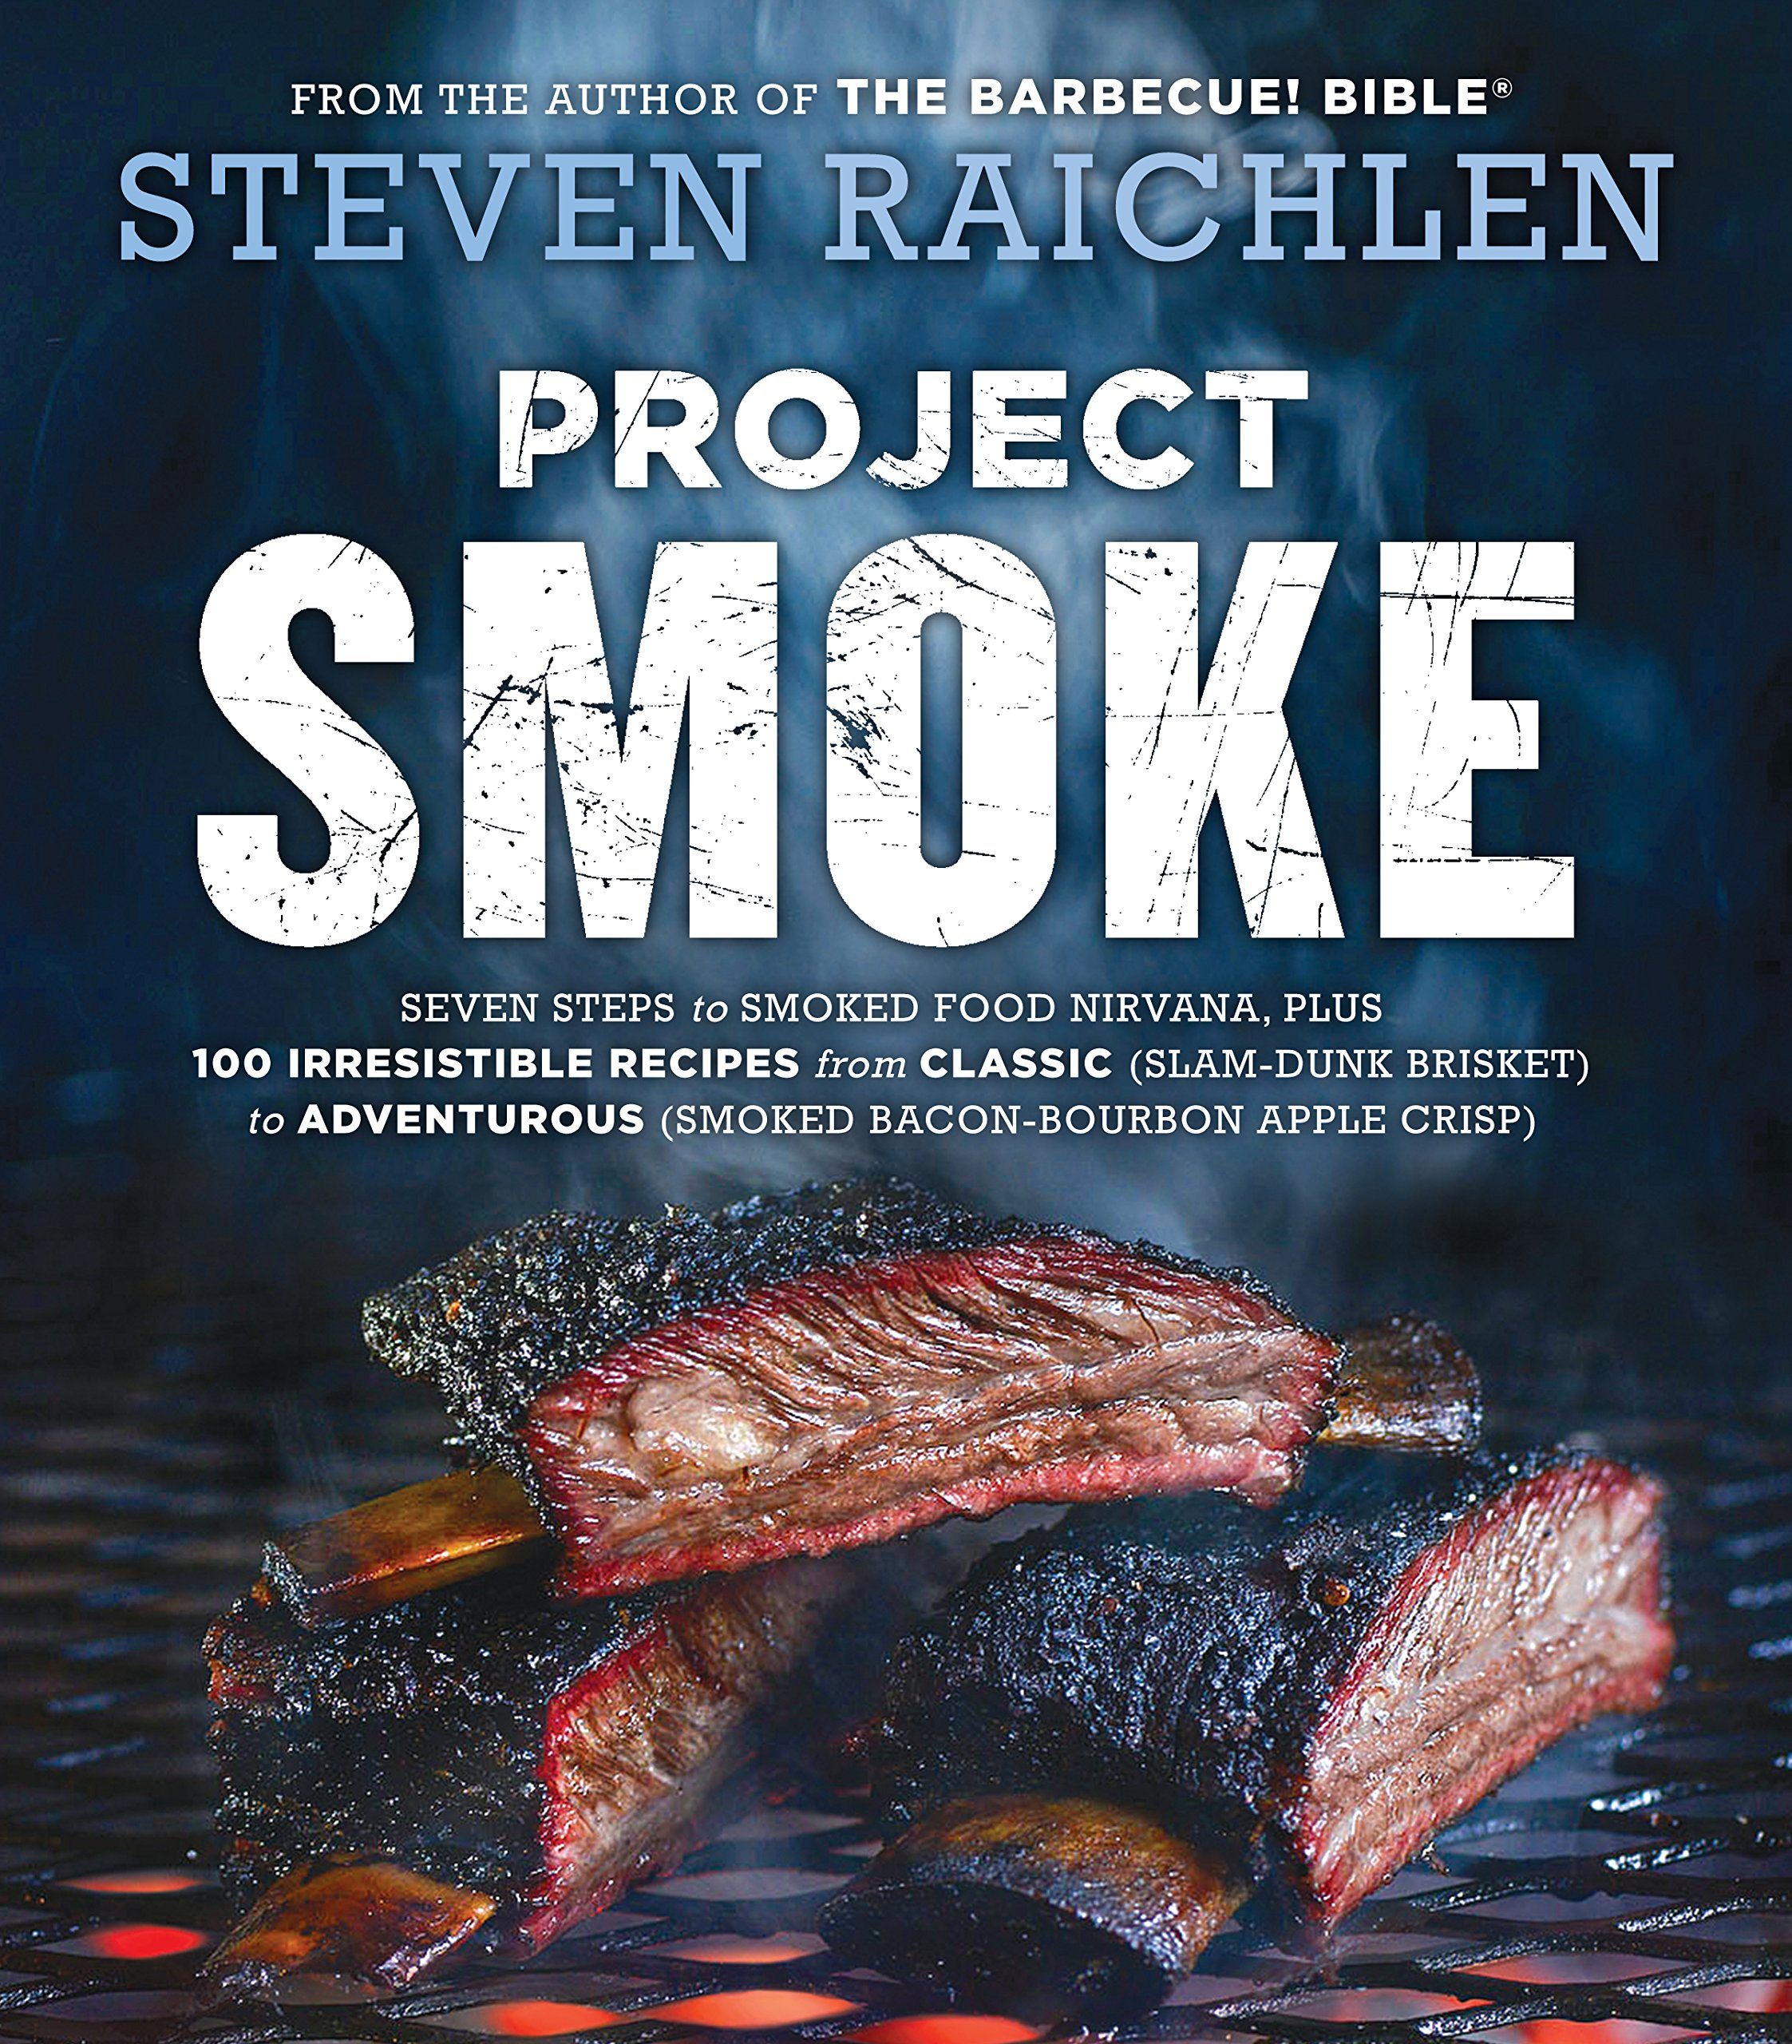 Project Smoke: Seven Steps to Smoked Food Nirvana, Plus 100 Irresistible Recipes from Classic (Slam-Dunk Brisket) to Adventurous (Smoked Bacon-Bourbon Apple Crisp) by Workman Publishing Company